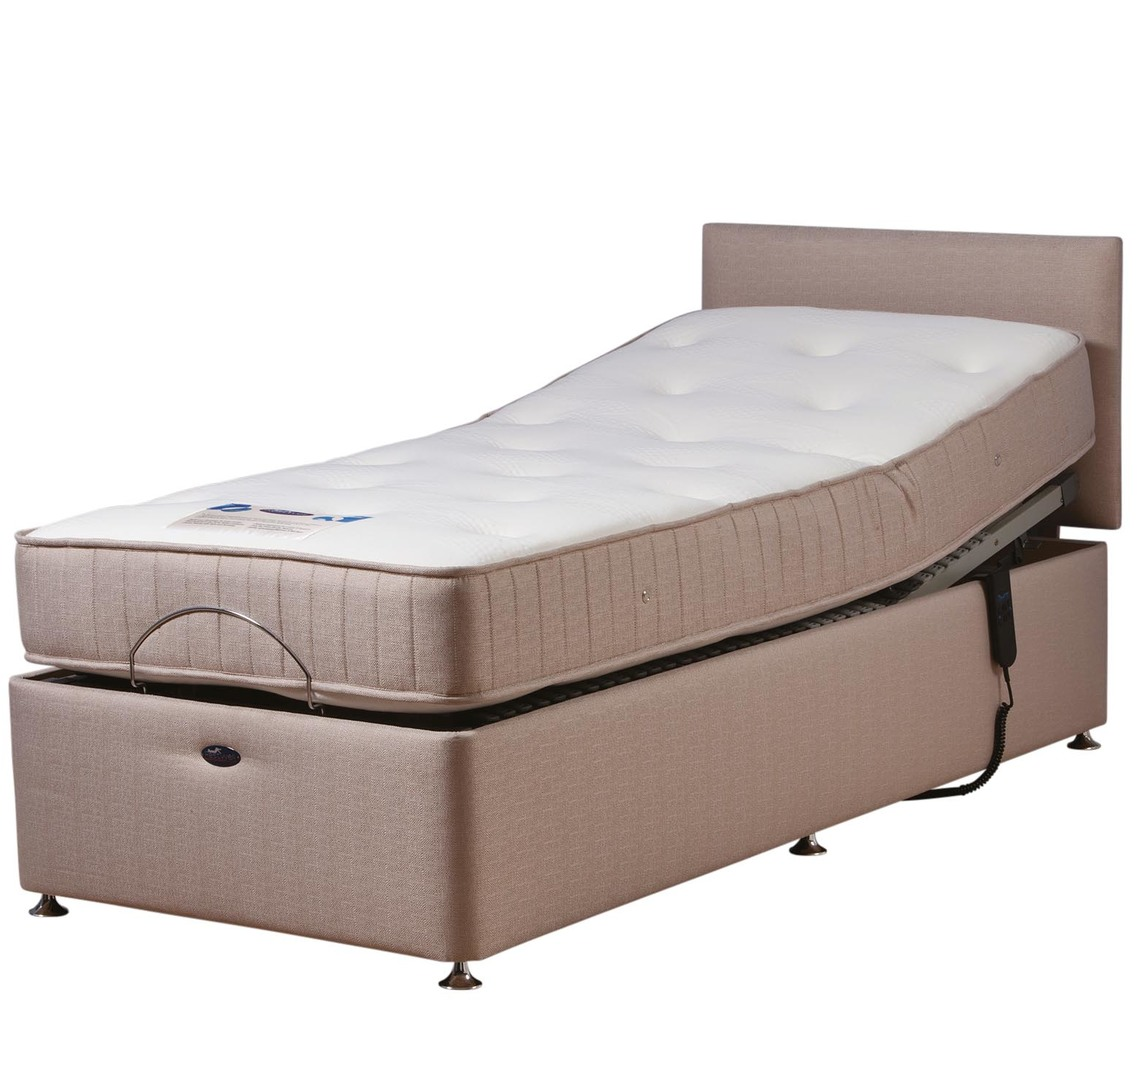 beds enjoy bed benefits kleinmon stores spt adjustable mattress of my sleep